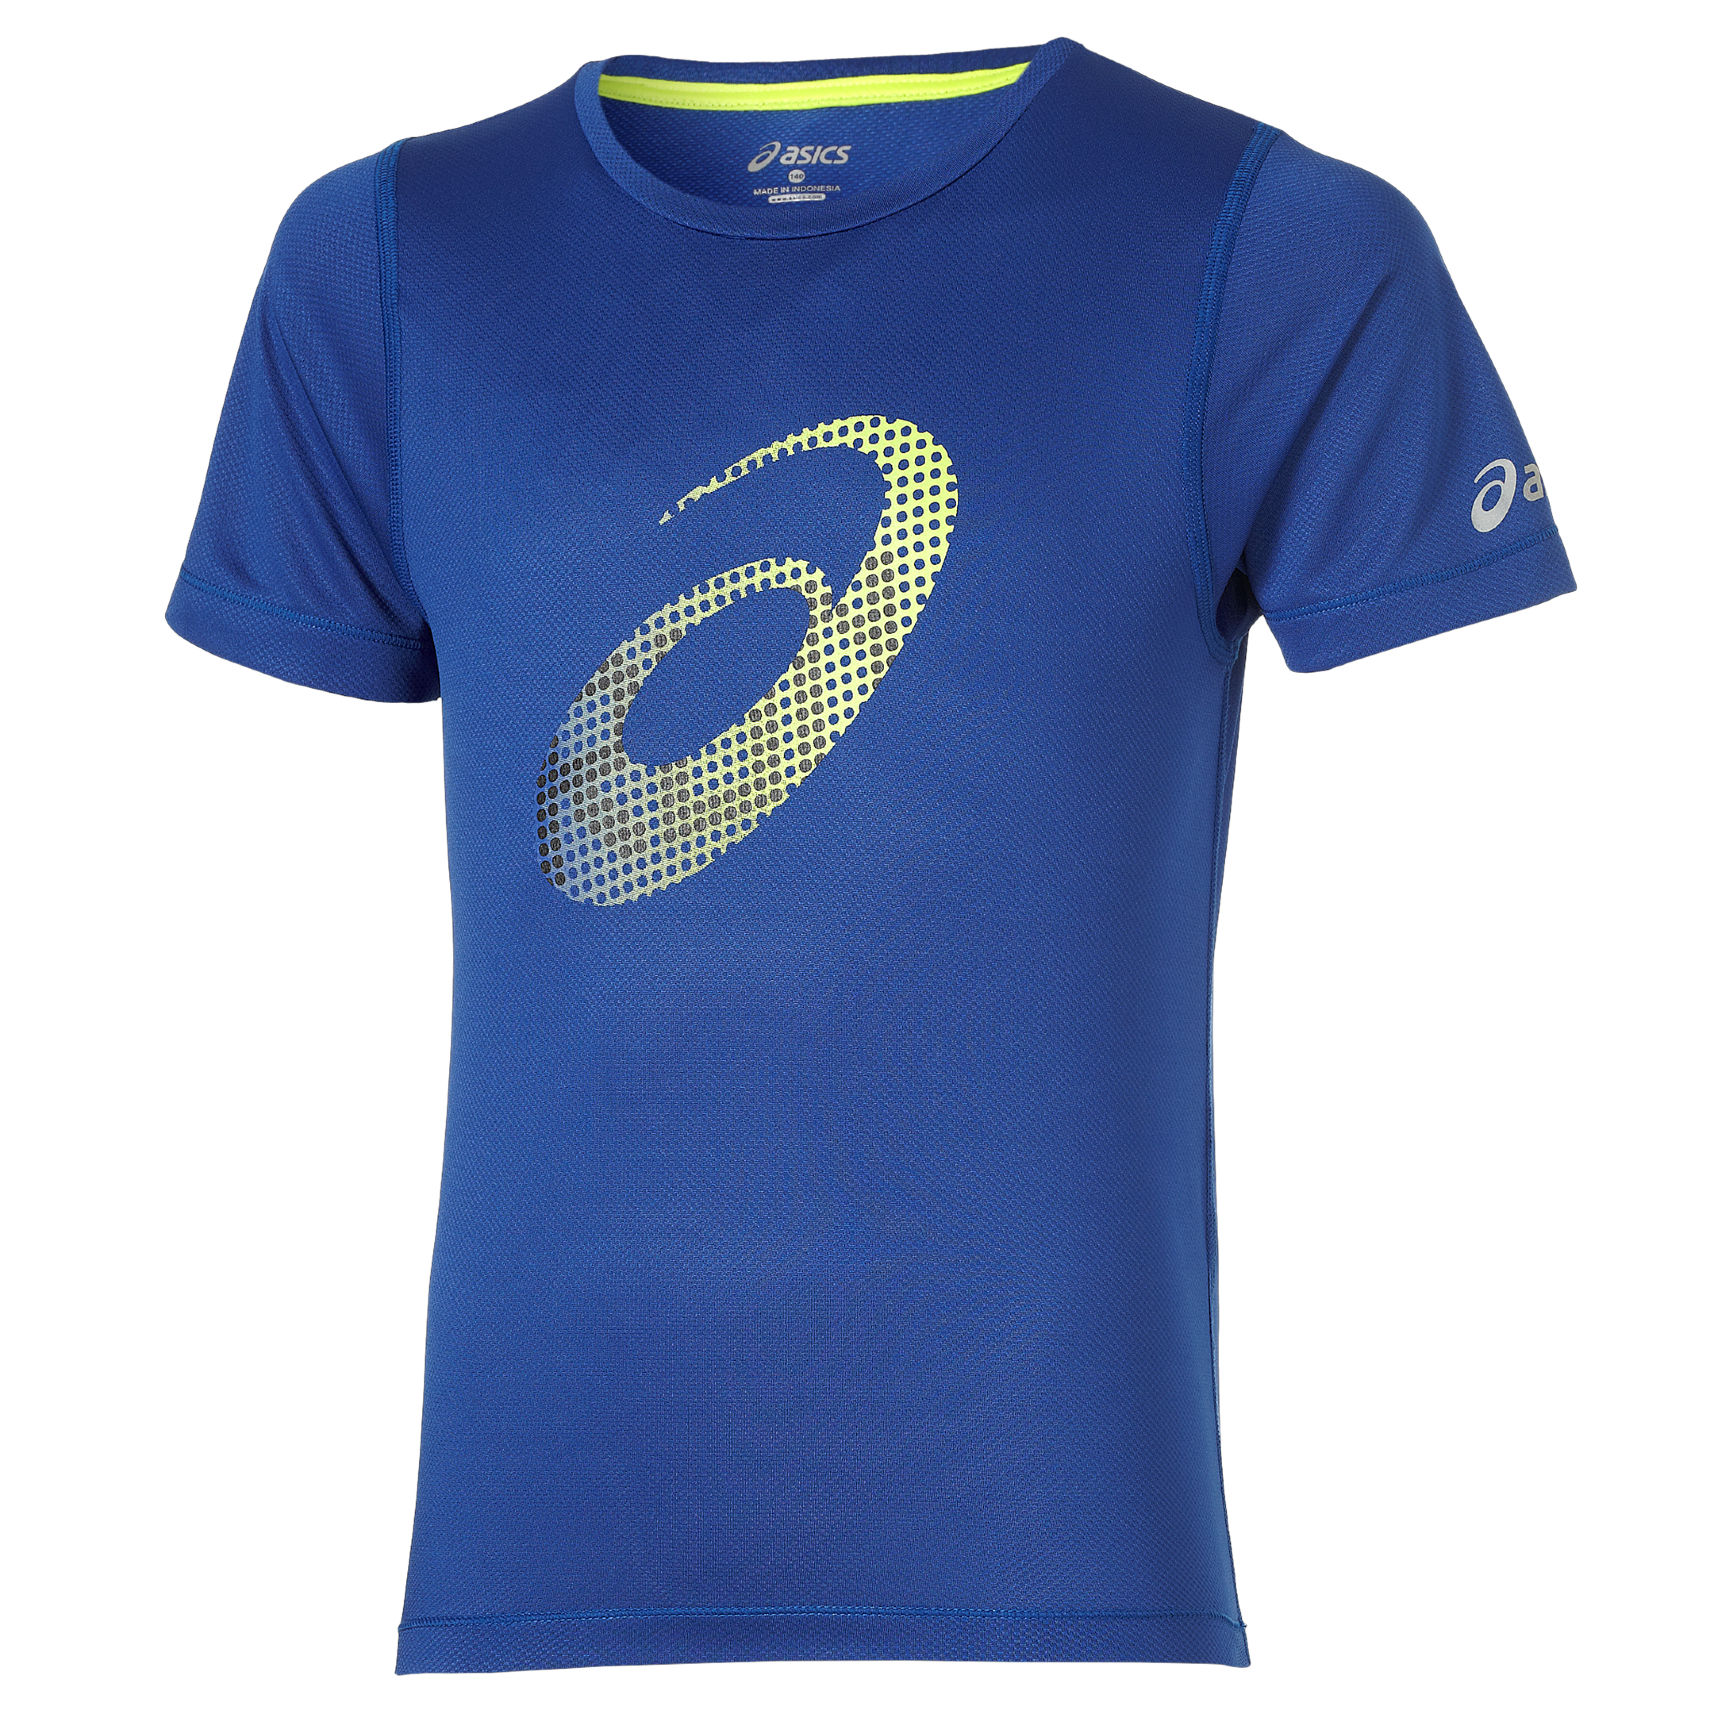 Asics Boys SS Top in Blau